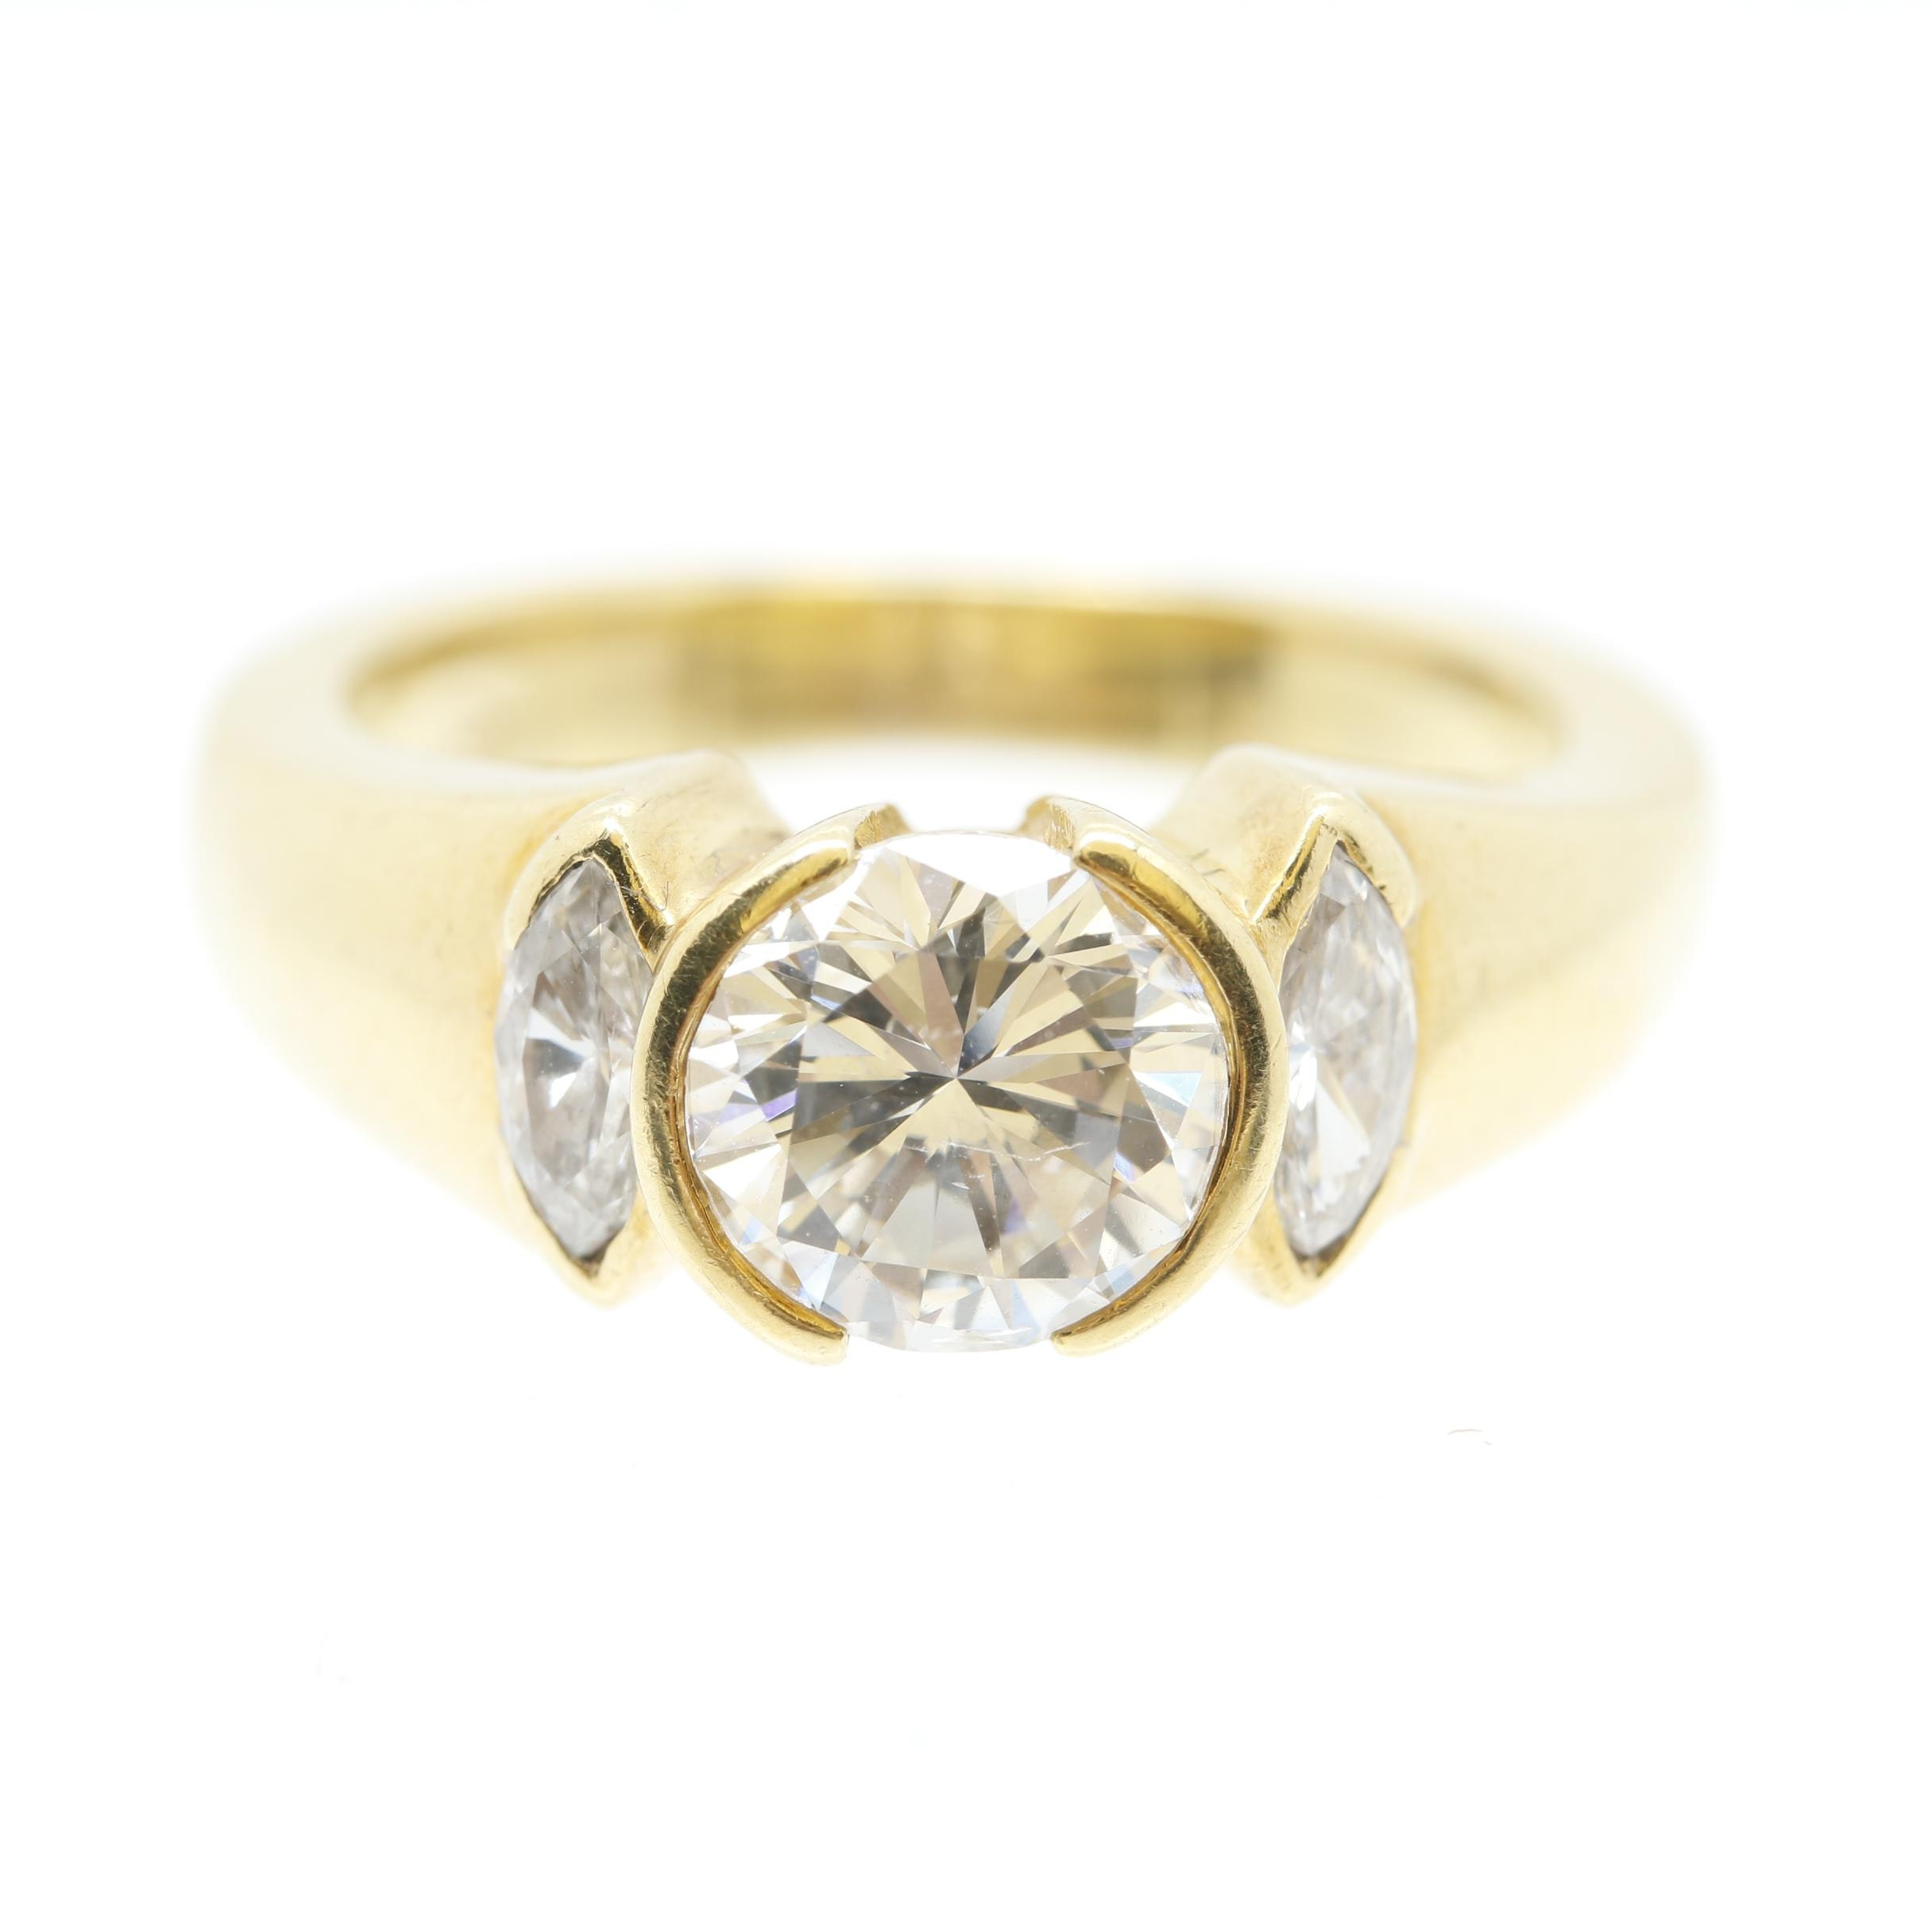 18K Yellow Gold 1.39 CTW Diamond Ring